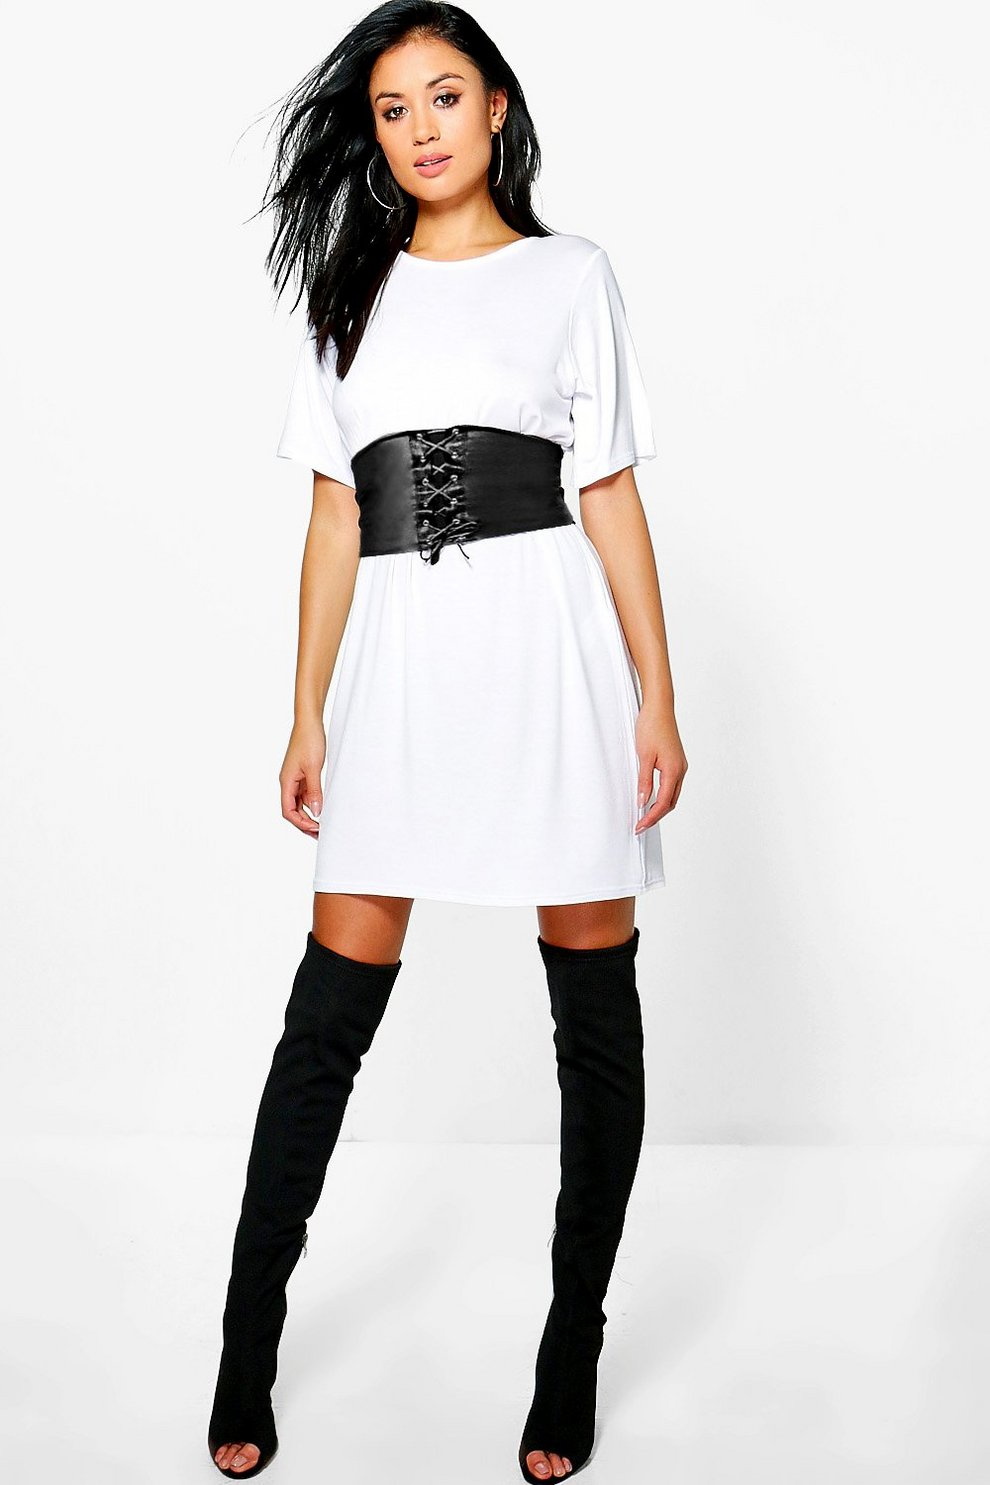 65e1c902f611 Womens White 2 in 1 Corset Belt T-Shirt Dress